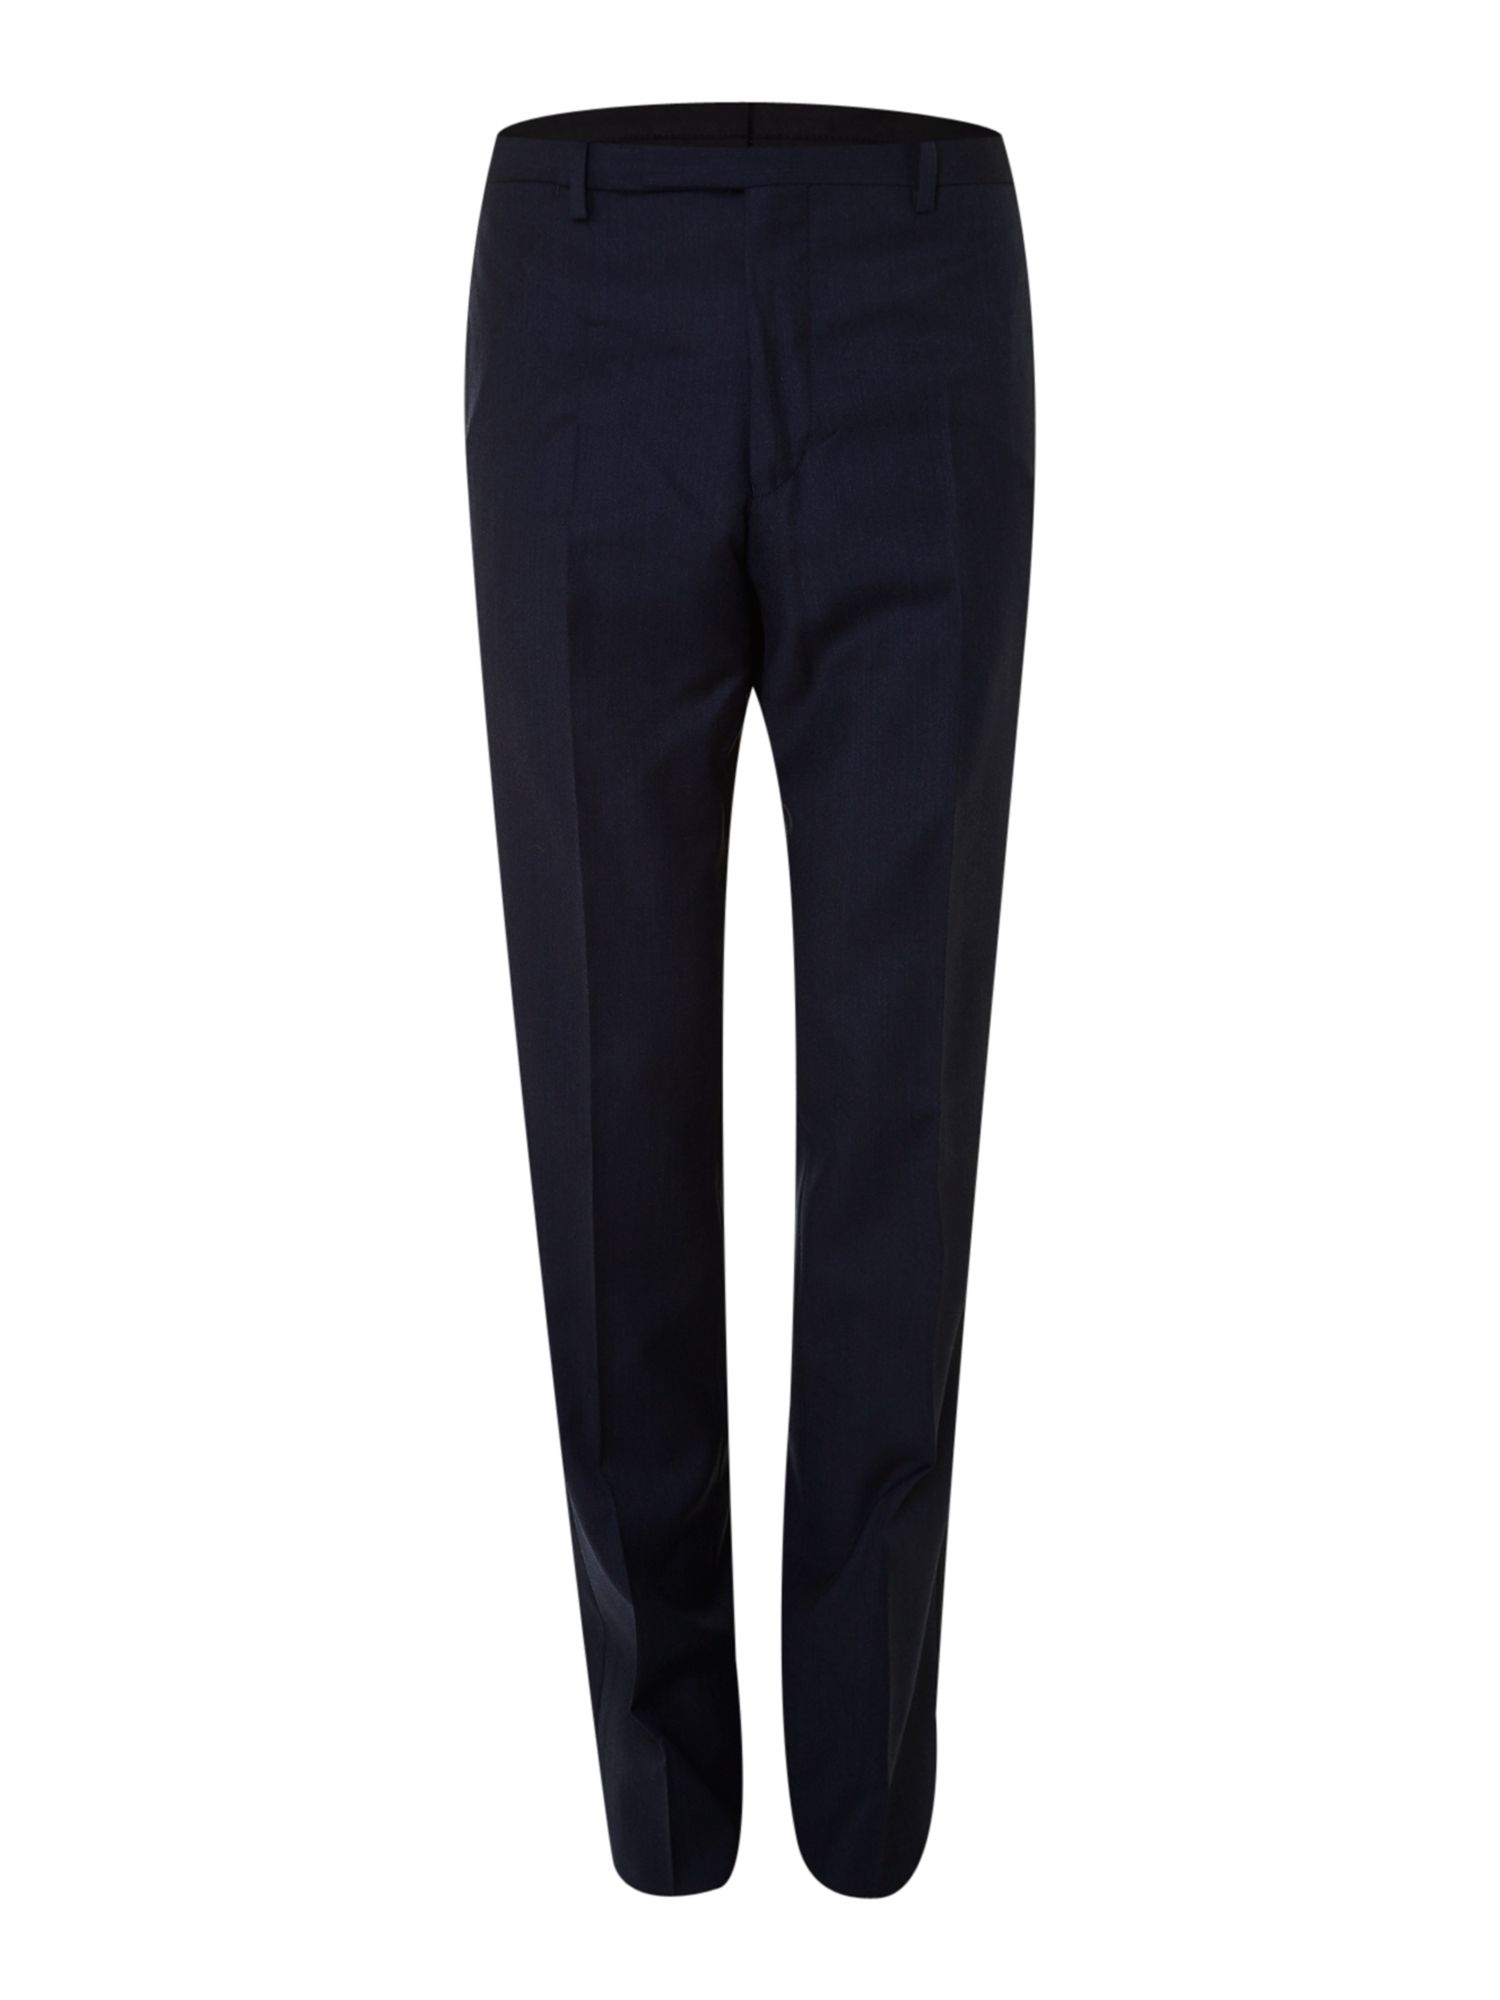 Peak lapel slim fit trousers